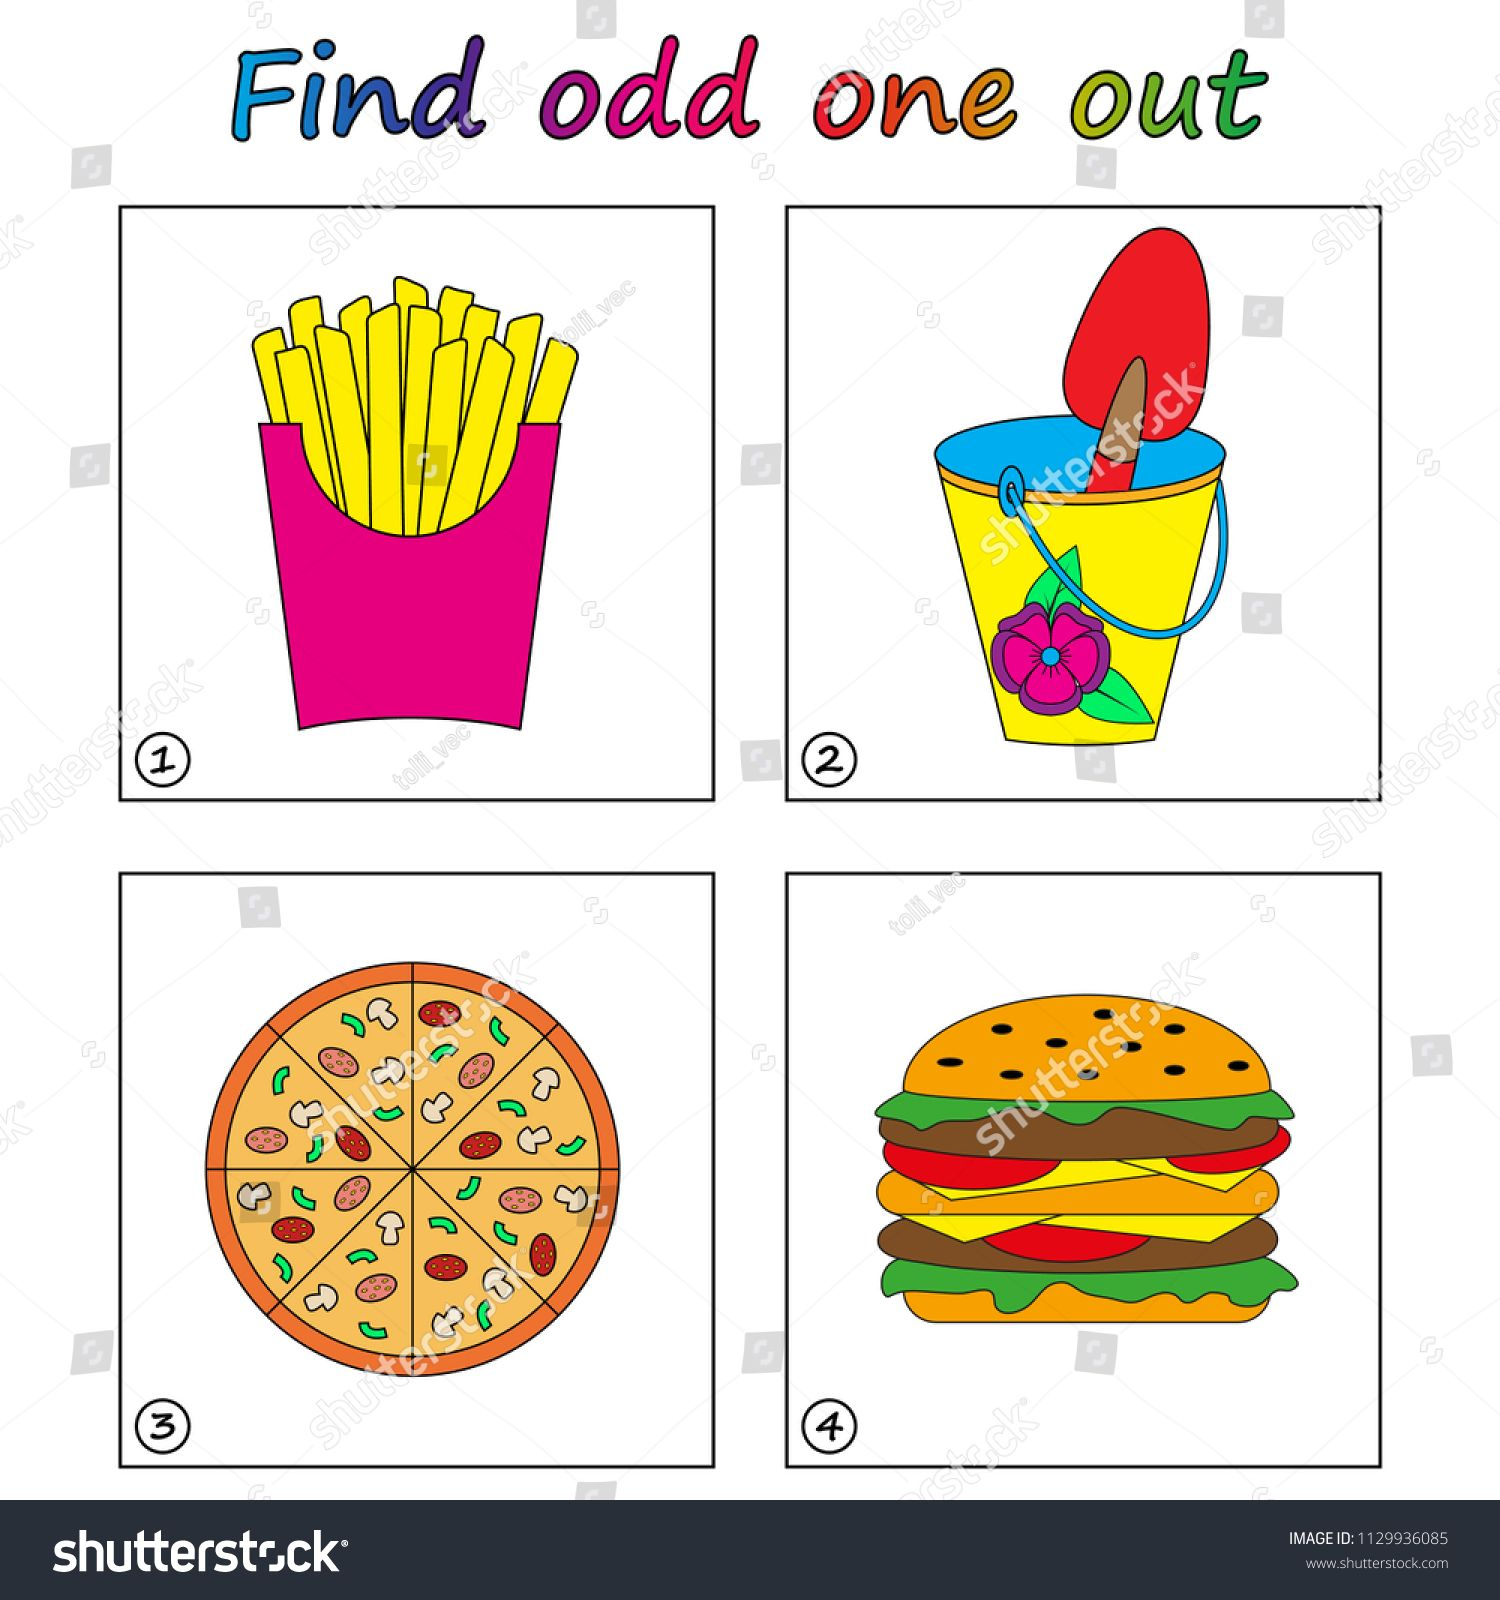 Find Odd One Out Game For Kids Worksheet Visual Educational Game For Children Ad Ad Game Kid Educational Games For Kids Educational Games Kids Stock [ 1600 x 1500 Pixel ]